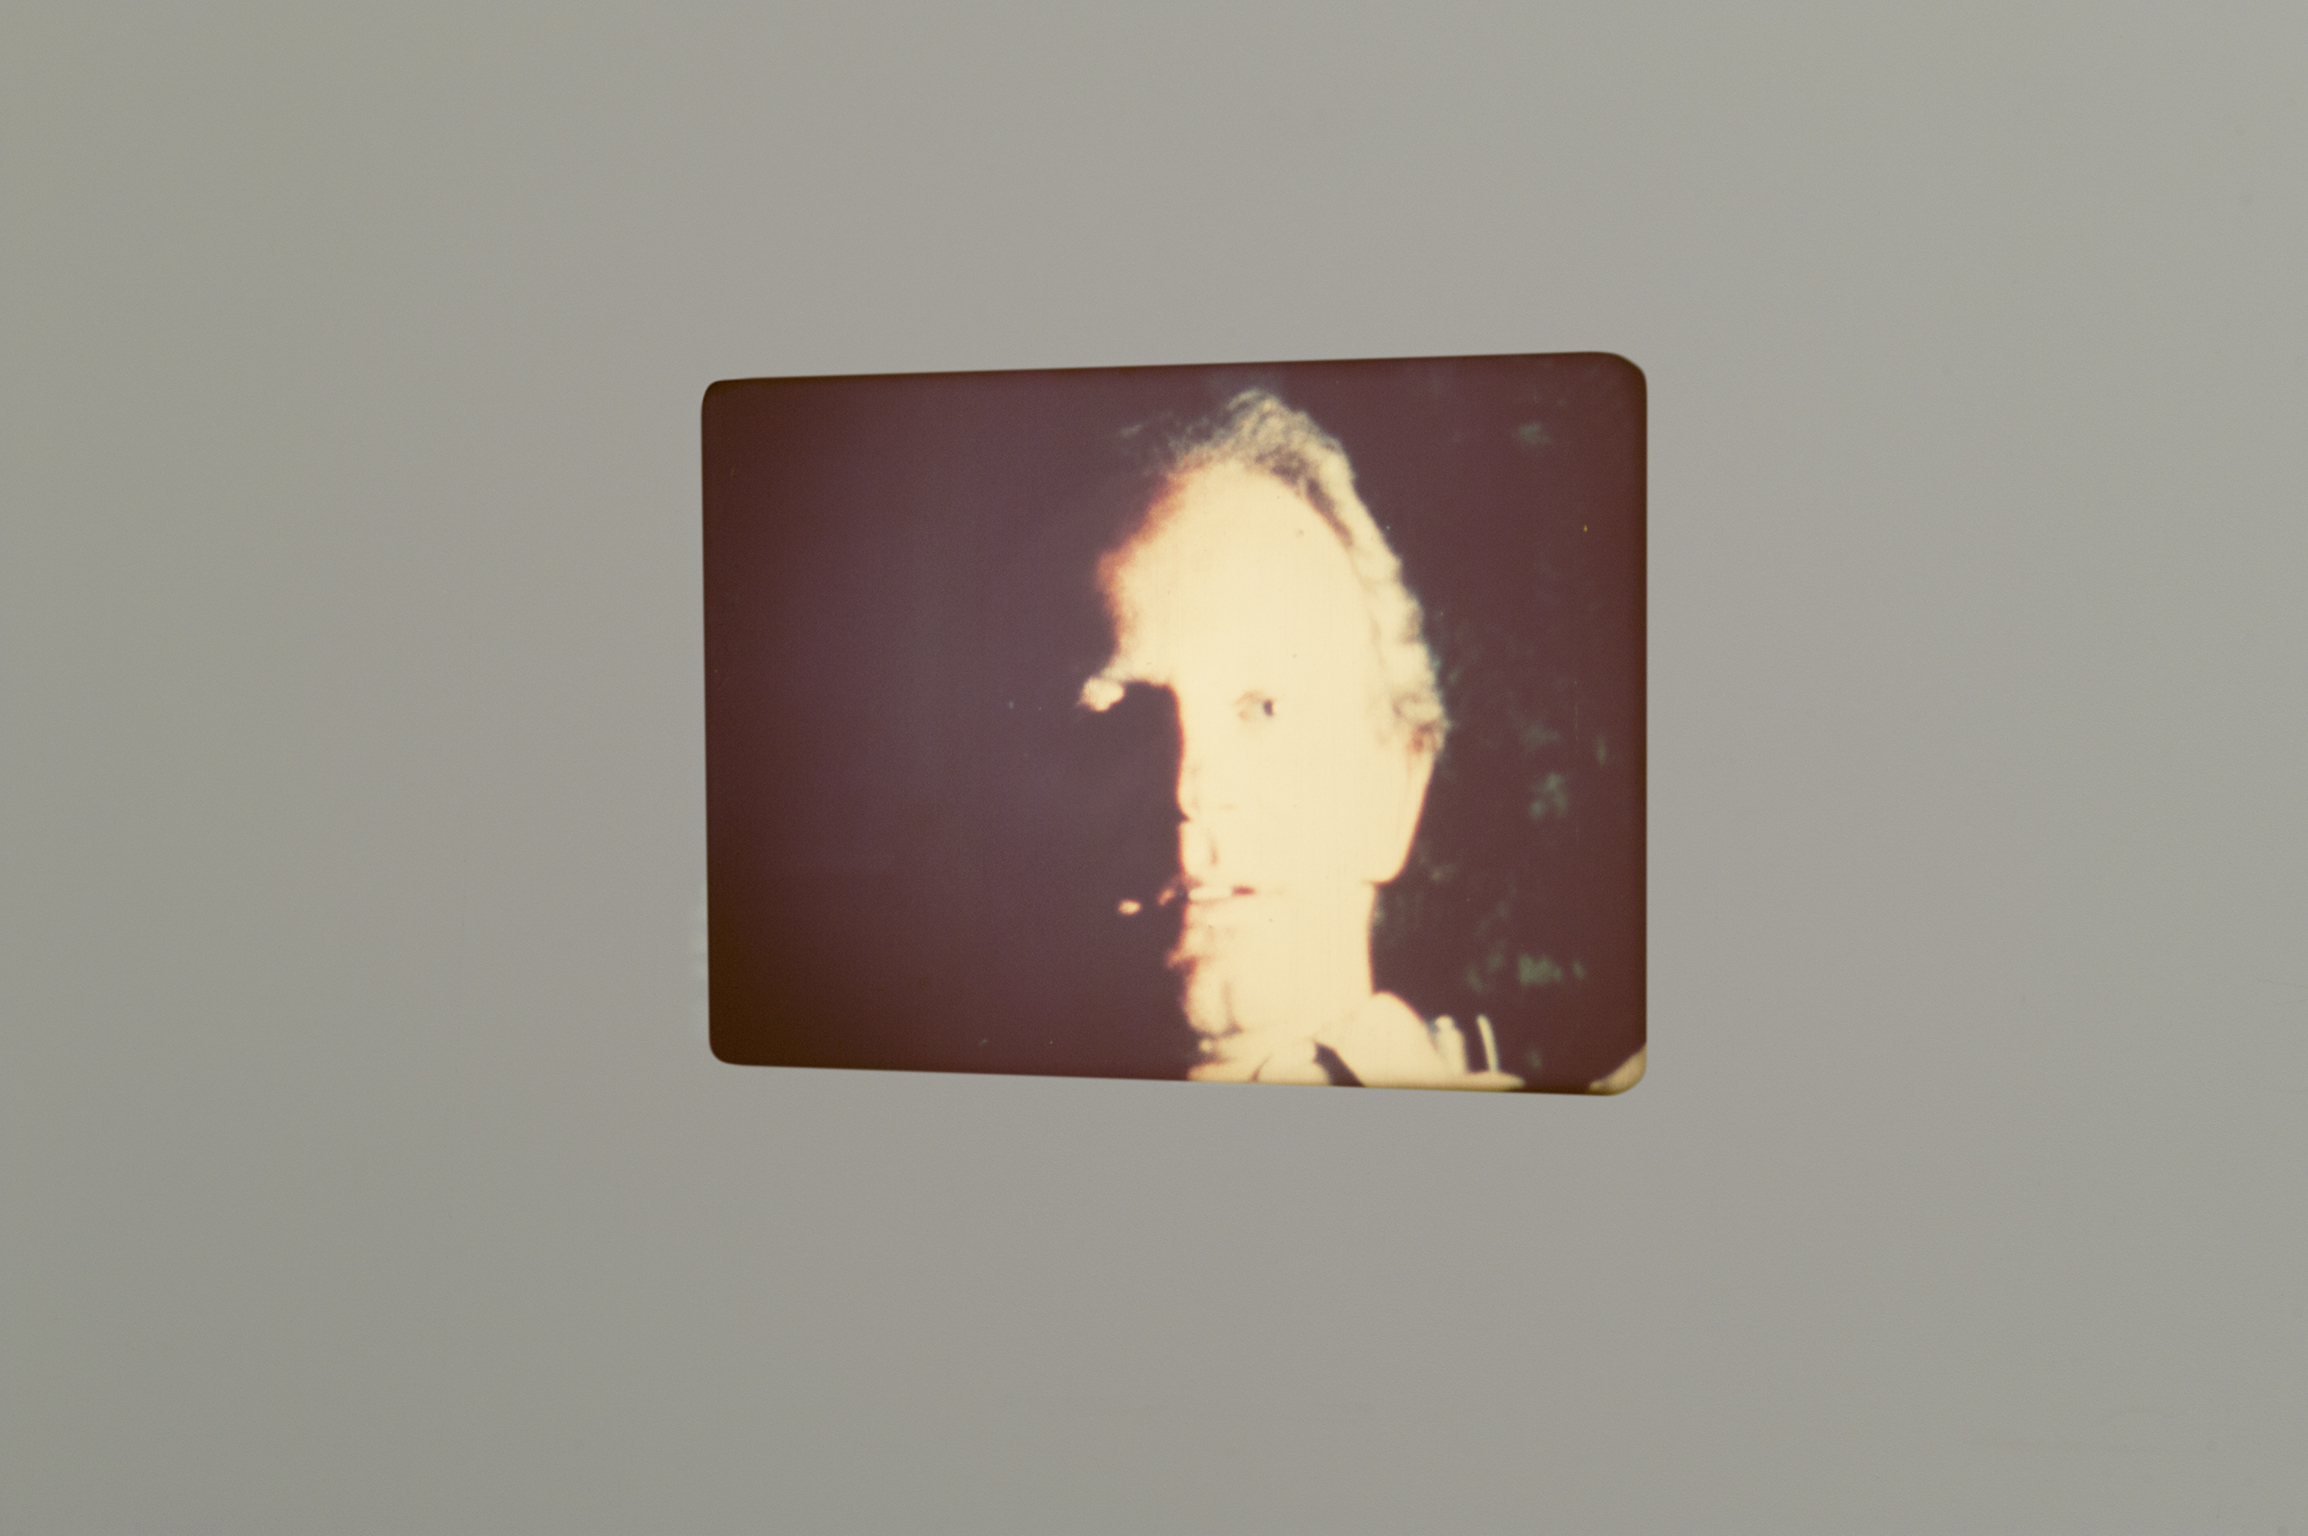 ​Robert Kleyn, Flash Portrait, 1976, super 8 film transferred to 16mm, dimensions variable by